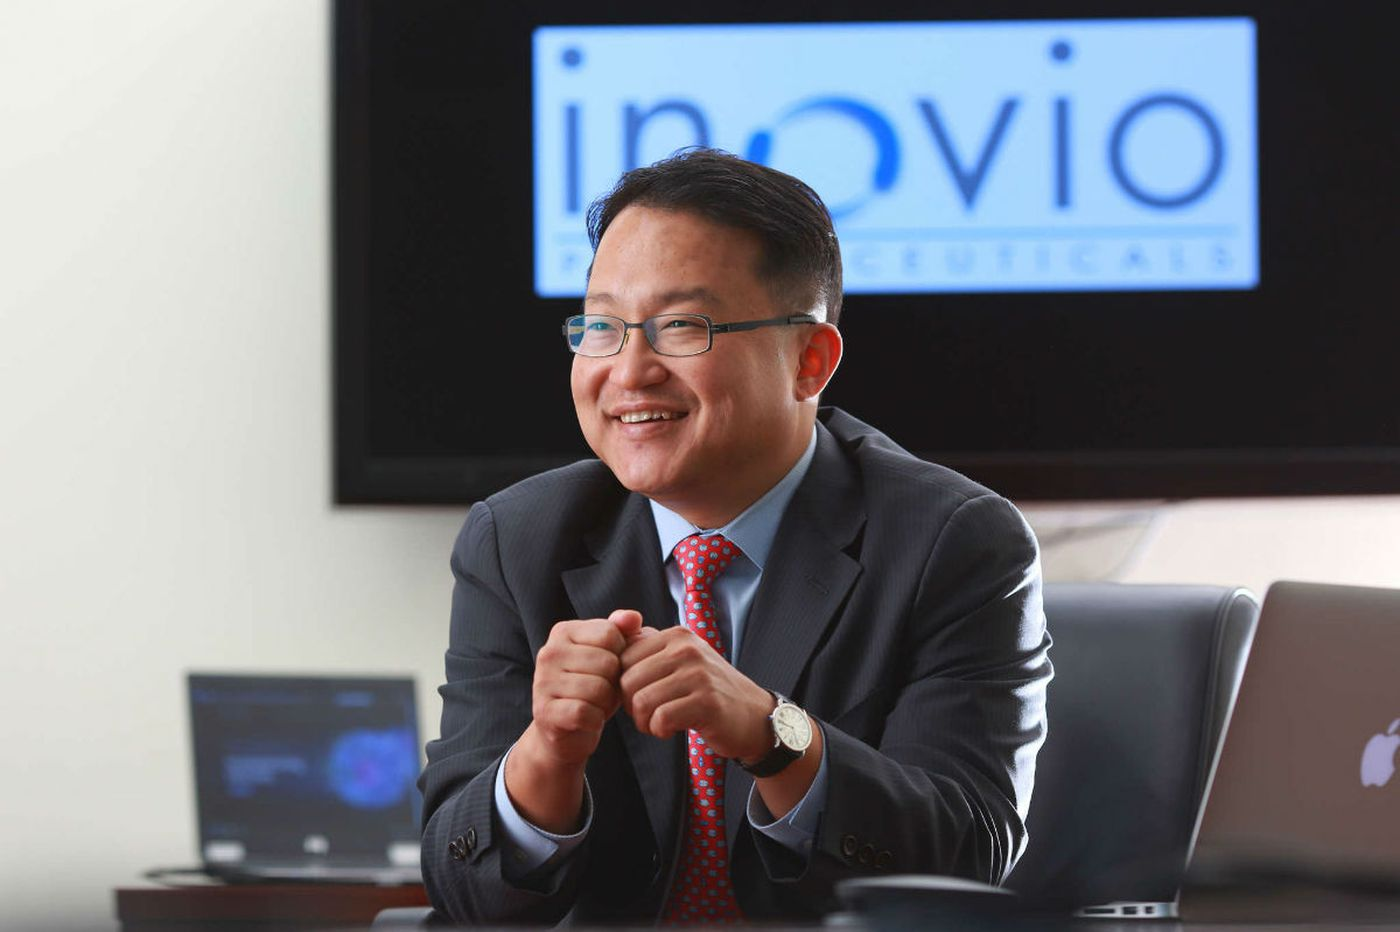 Inovio's COVID-19 vaccine trial put on hold by FDA